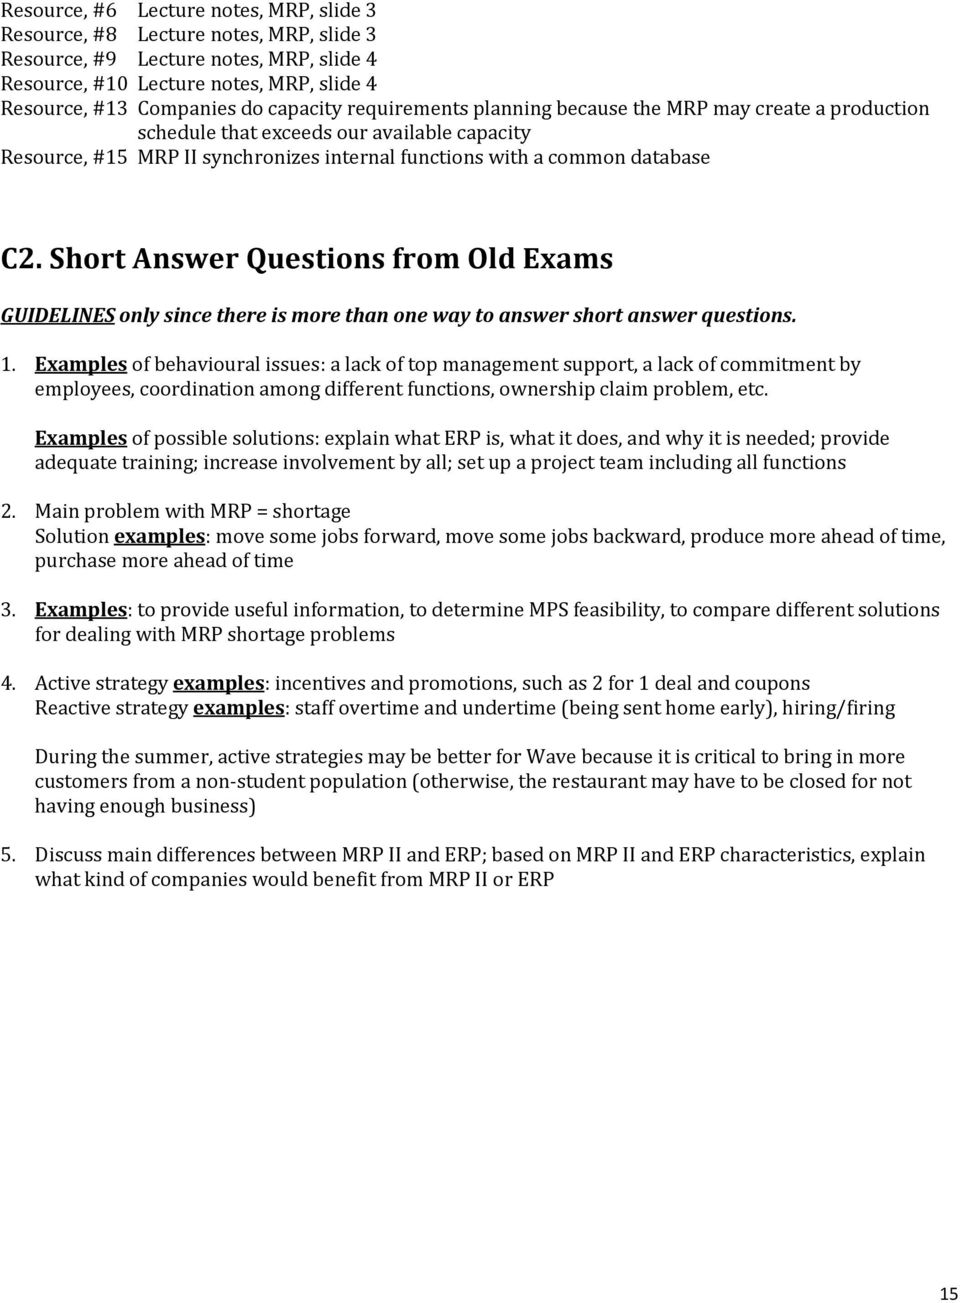 Short Answer Questions from Old Exams GUIDELINES only since there is more than one way to answer short answer questions. 1.